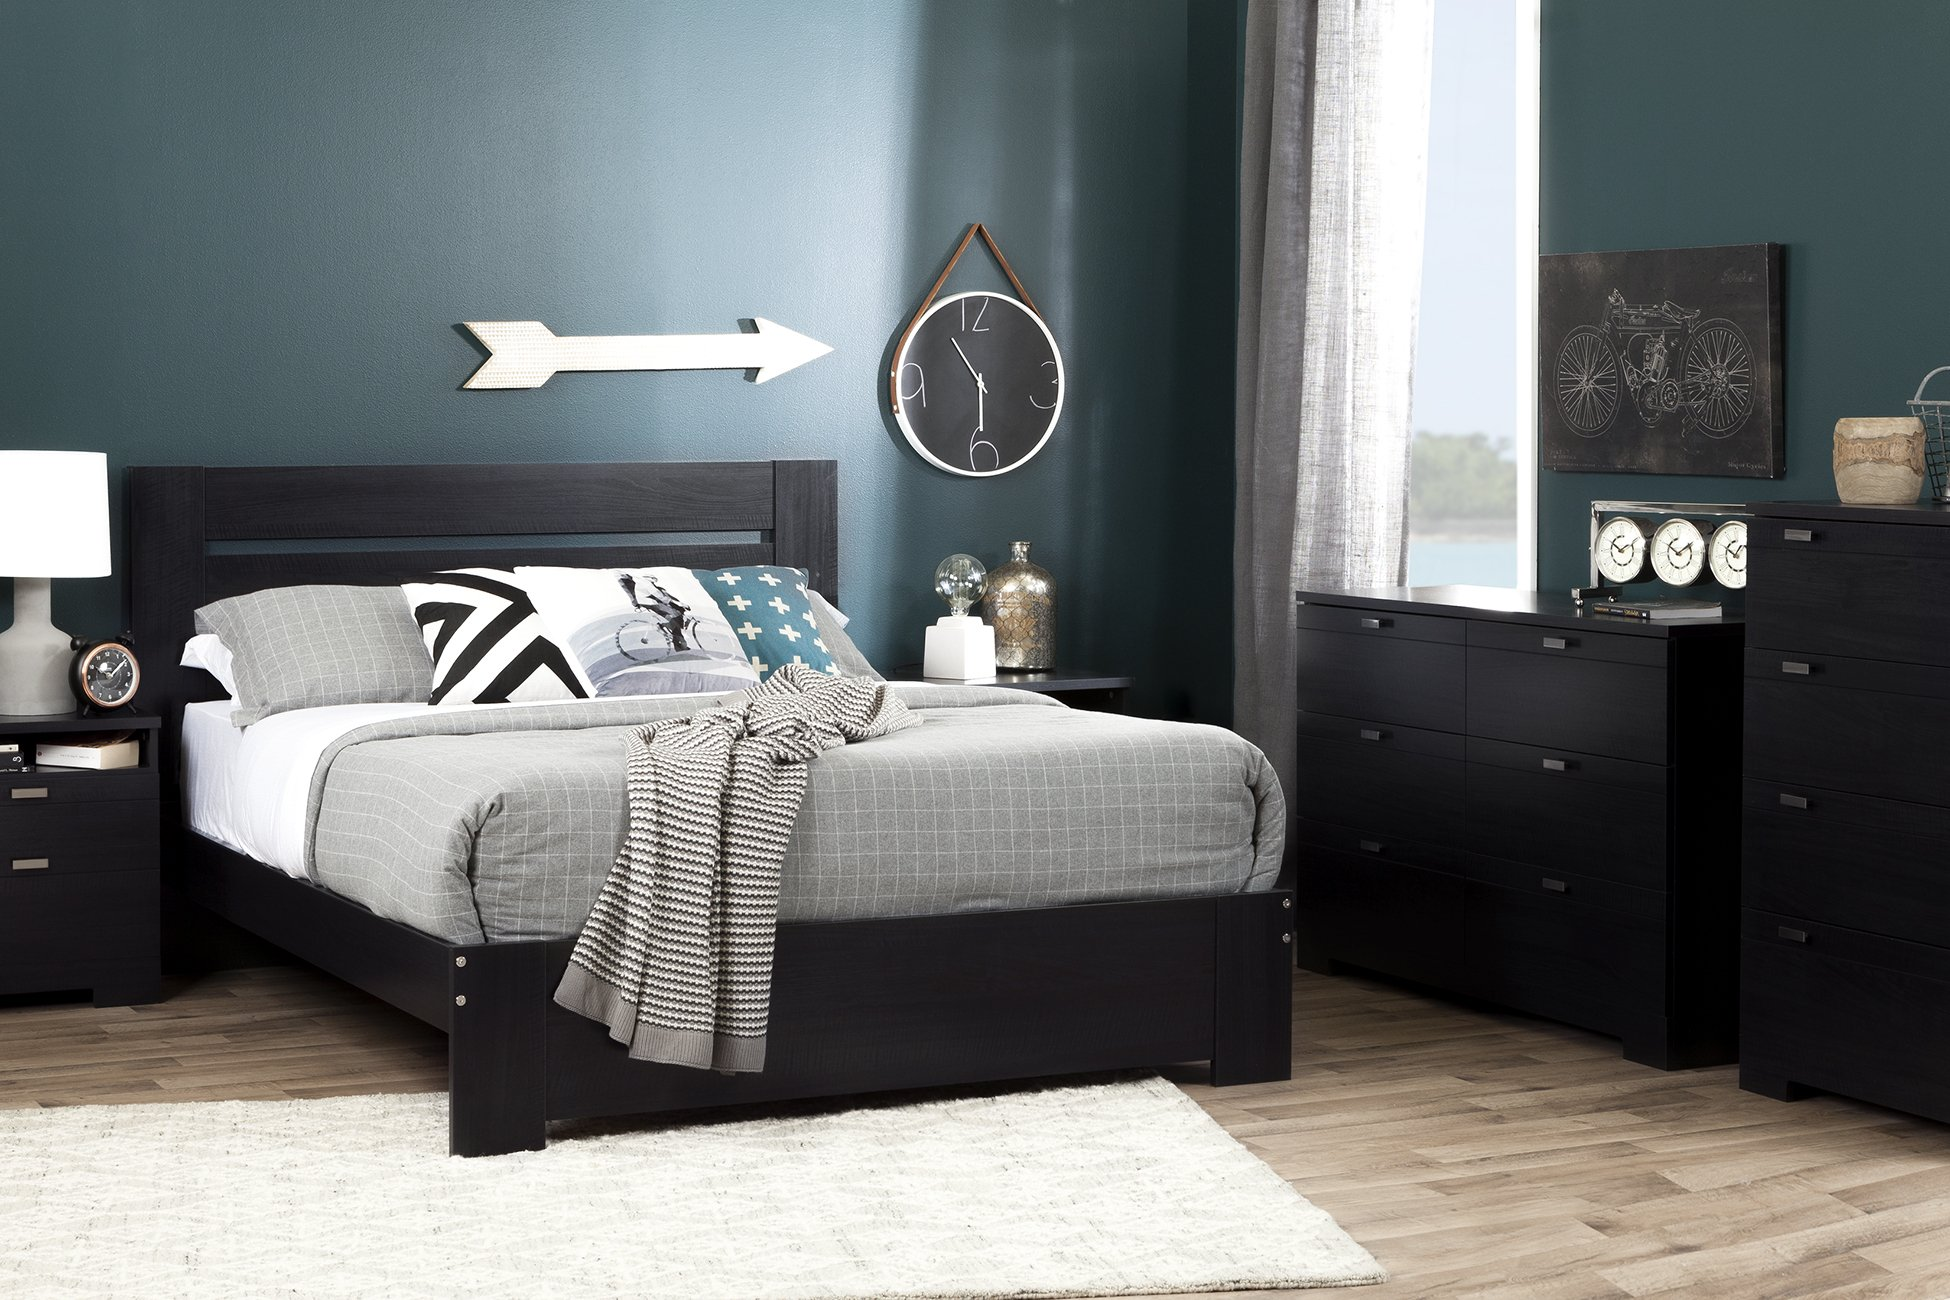 South Shore Reevo Full/Queen Headboard (54/60''), Black Onyx by South Shore (Image #3)